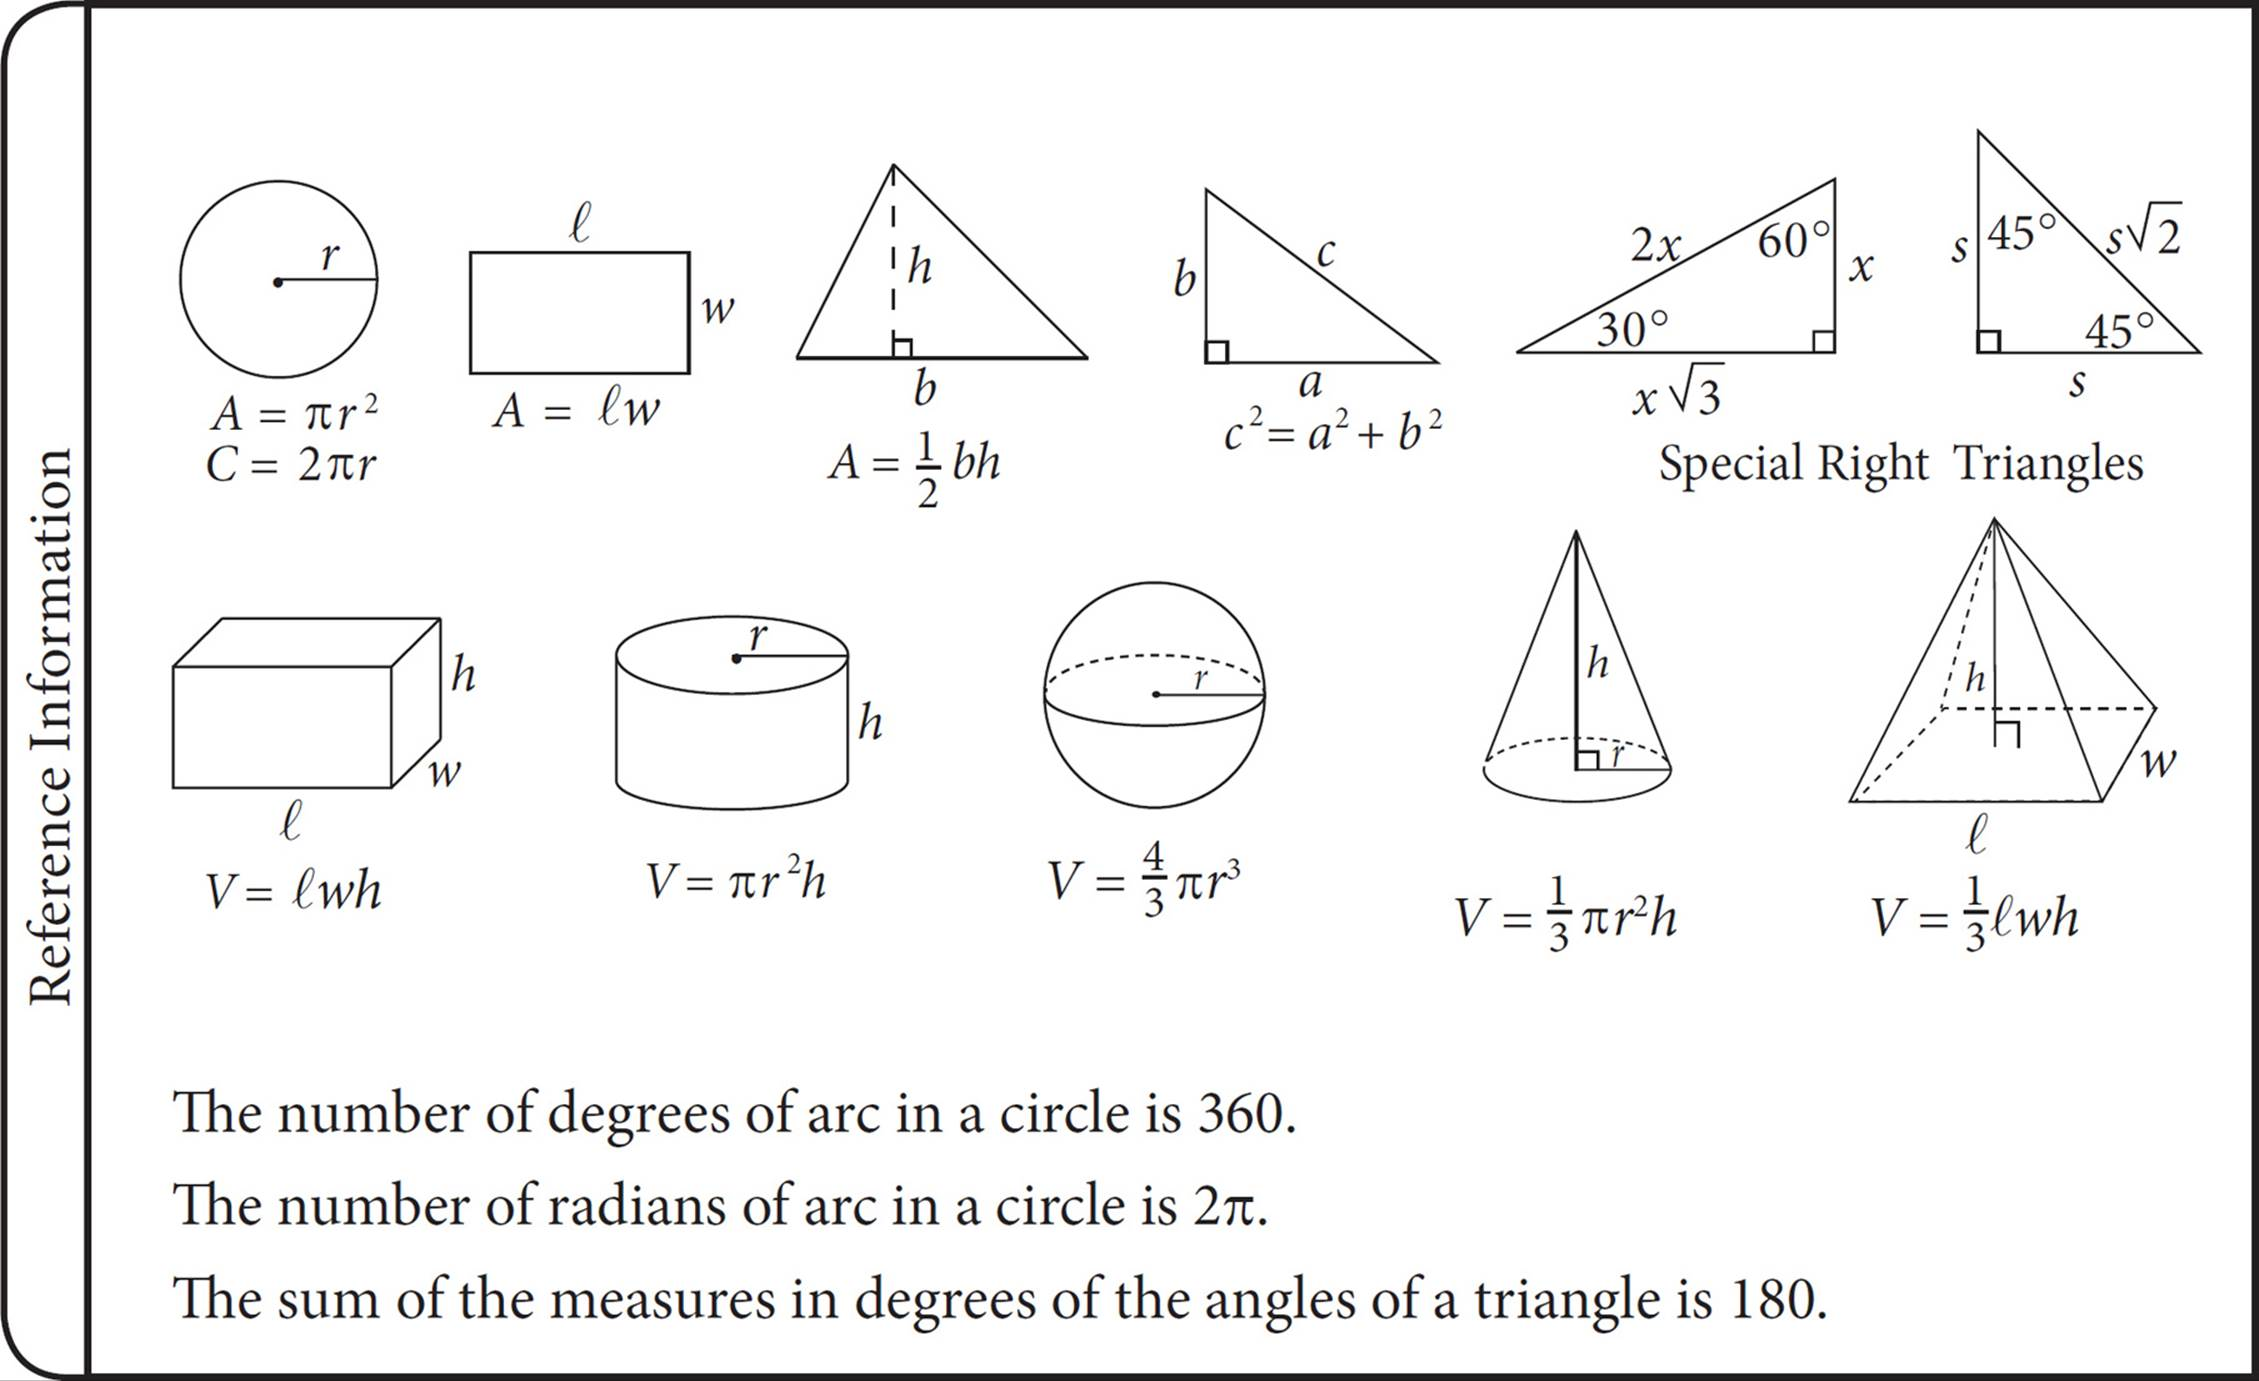 geometry how to crack the math test cracking the new sat this box of information contains some of what you ll need to tackle geometry on the sat in this chapter we ll cover how to approach geometry questions and